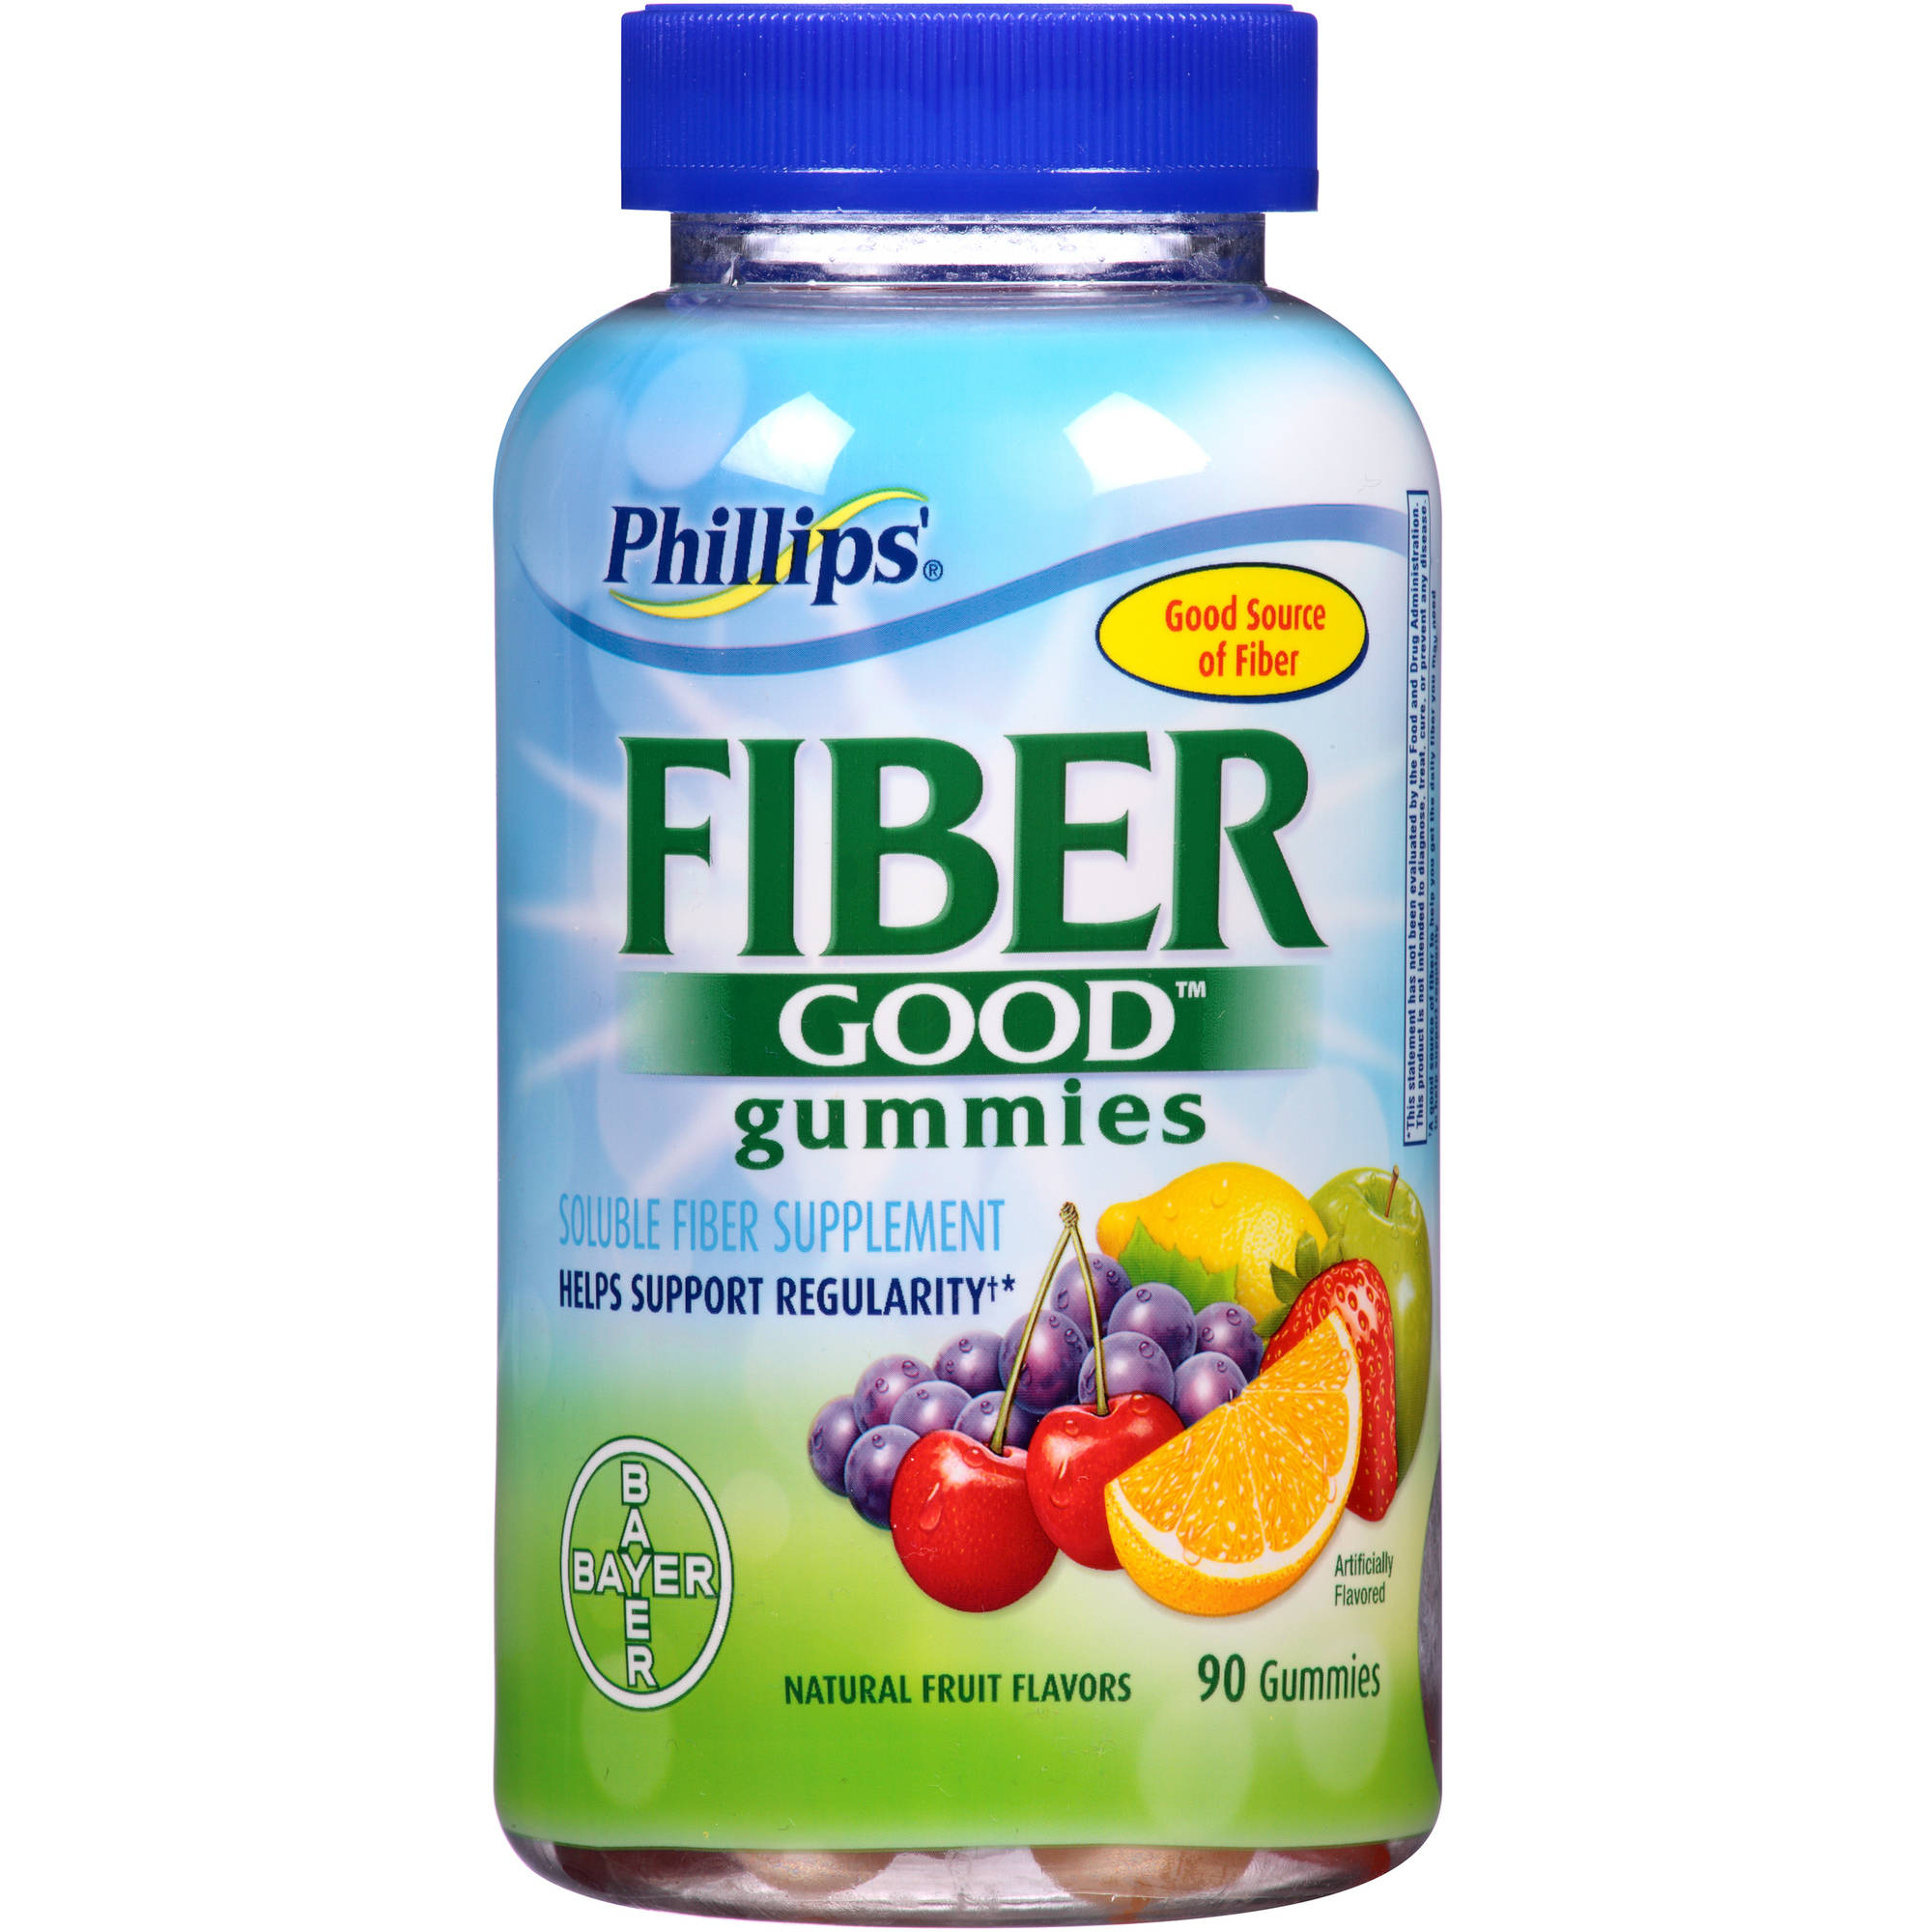 Phillips Fiber Good Gummies Fiber Supplement, 90 count